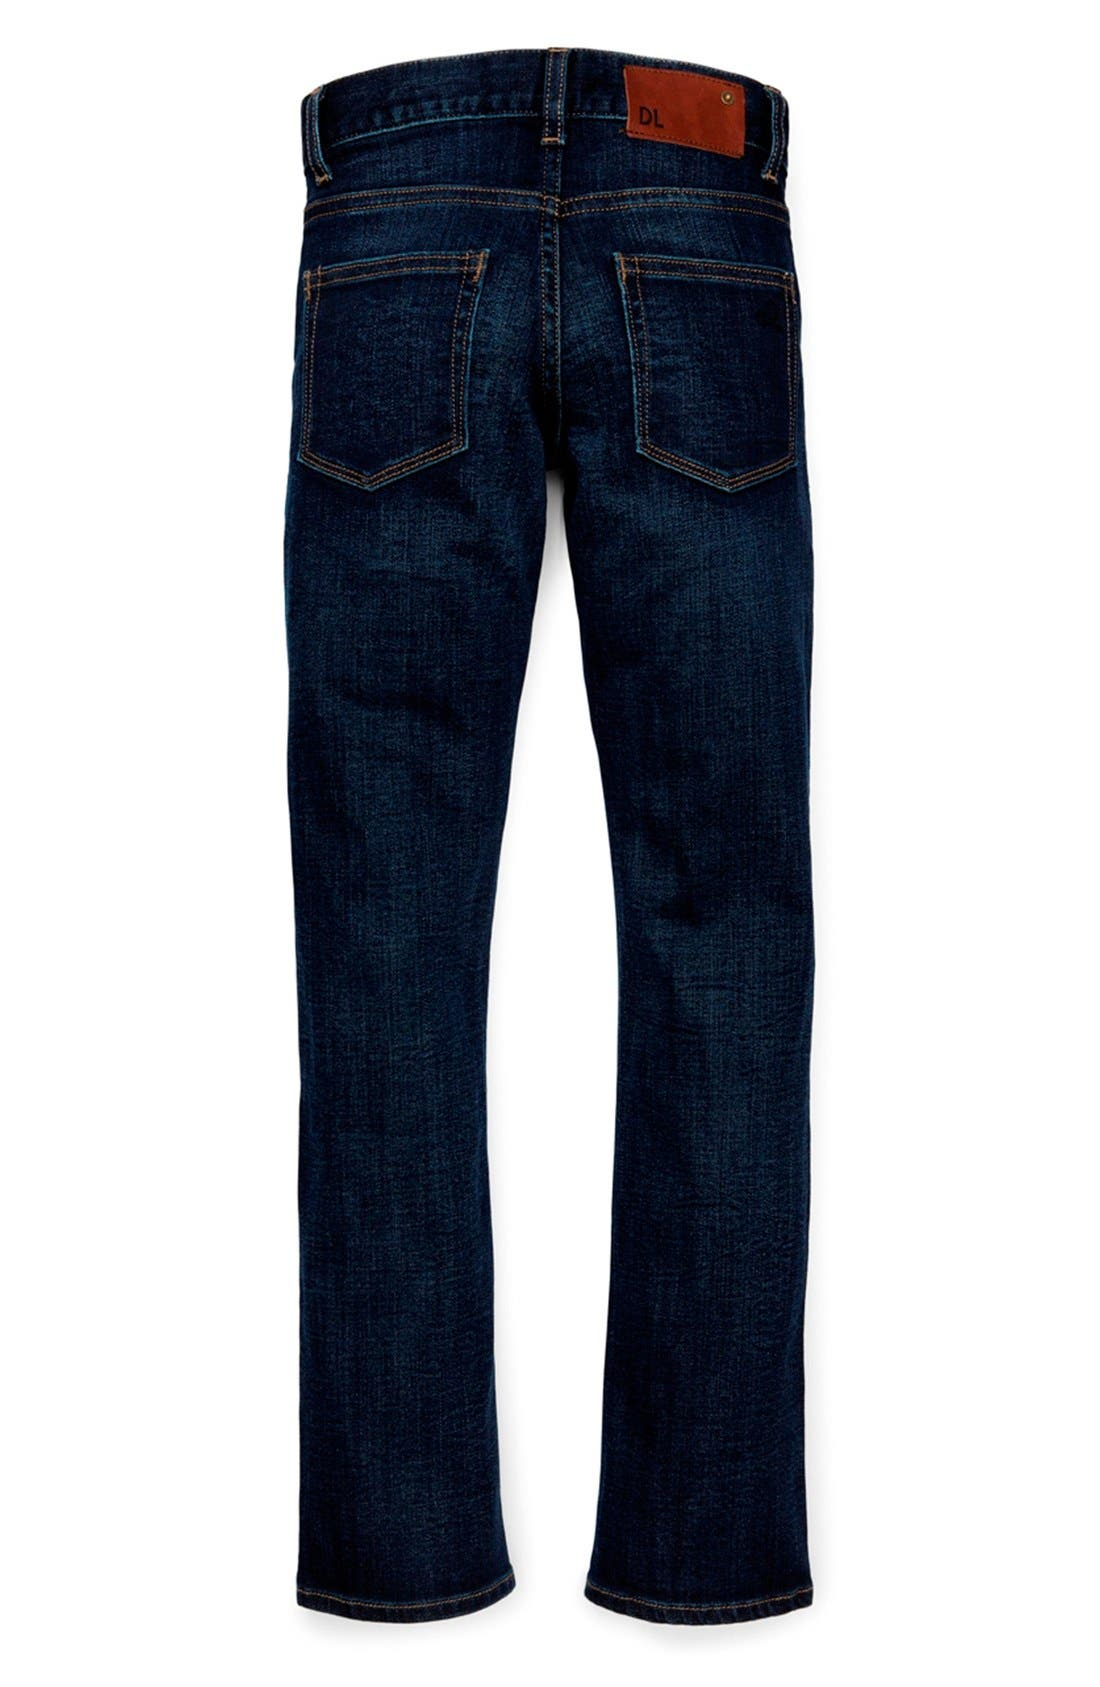 'Brady' Slim Fit Jeans,                             Alternate thumbnail 3, color,                             FERRET